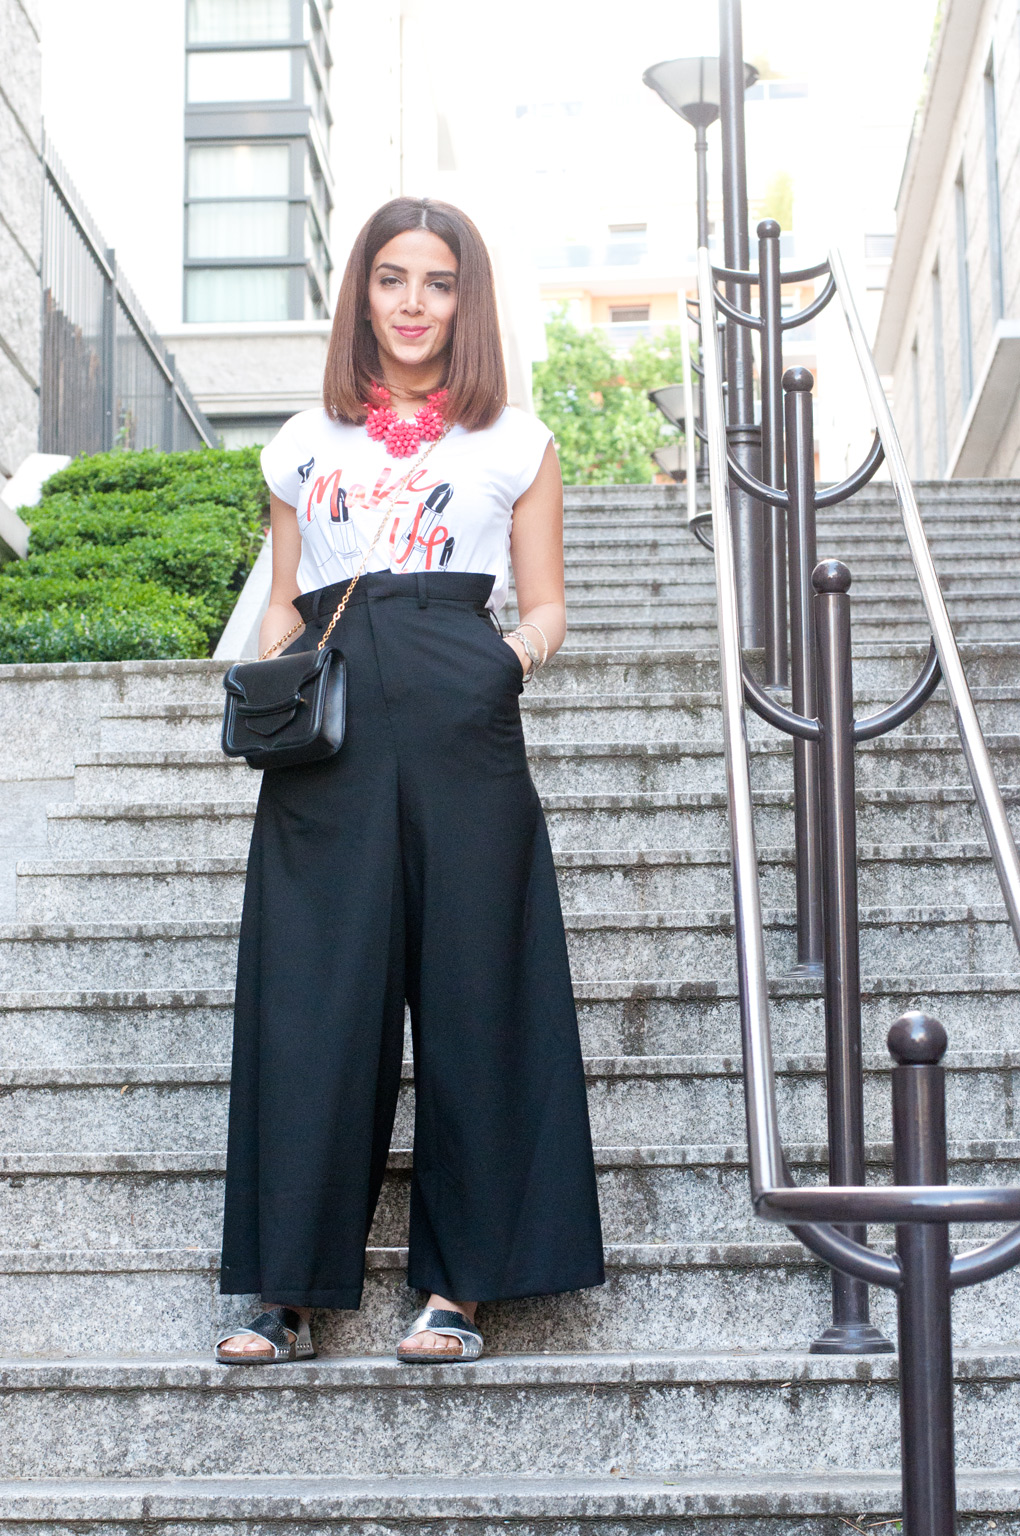 Lyla_Loves_Fashion_Junya_Watanabe_Trousers_Stella_McCartney_Tshirt_5923